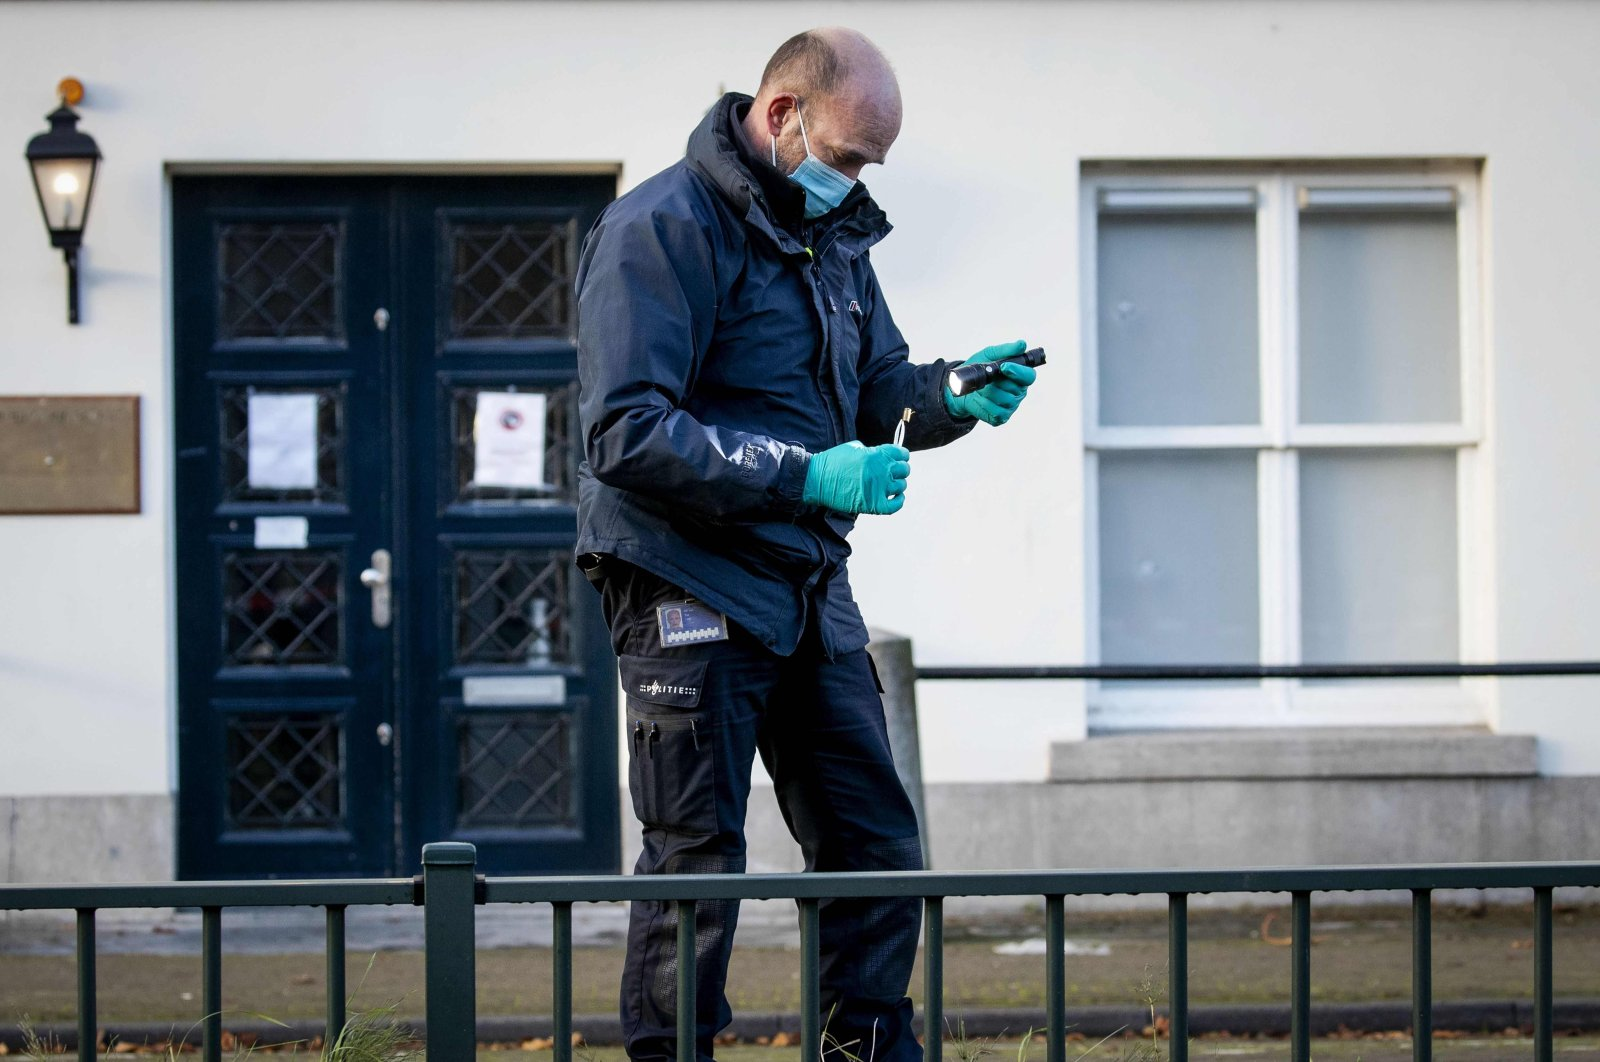 Forensics police officers investigate the Embassy of Saudi Arabia, The Hague, Nov. 12, 2020. (AFP Photo)